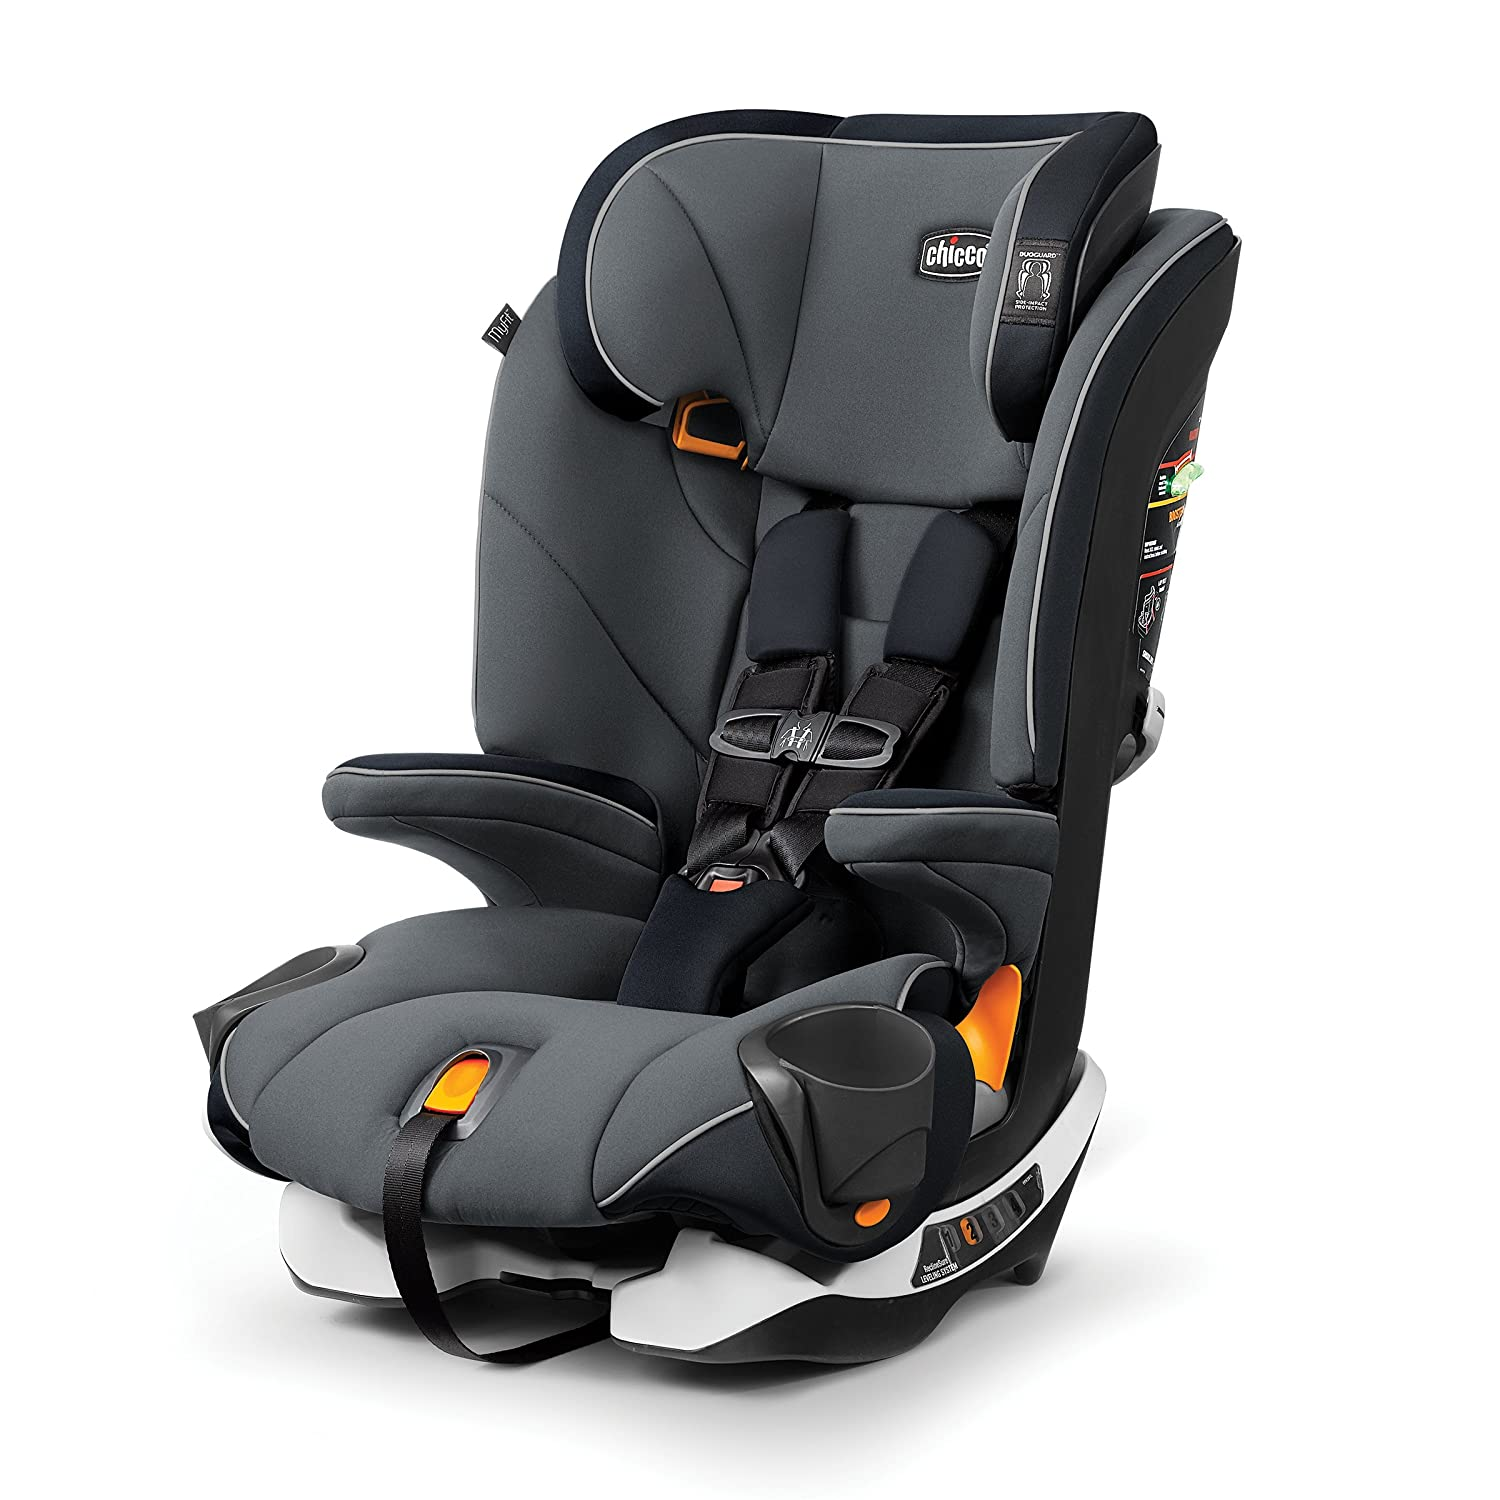 Chicco MyFit Harness and Booster Car Seat